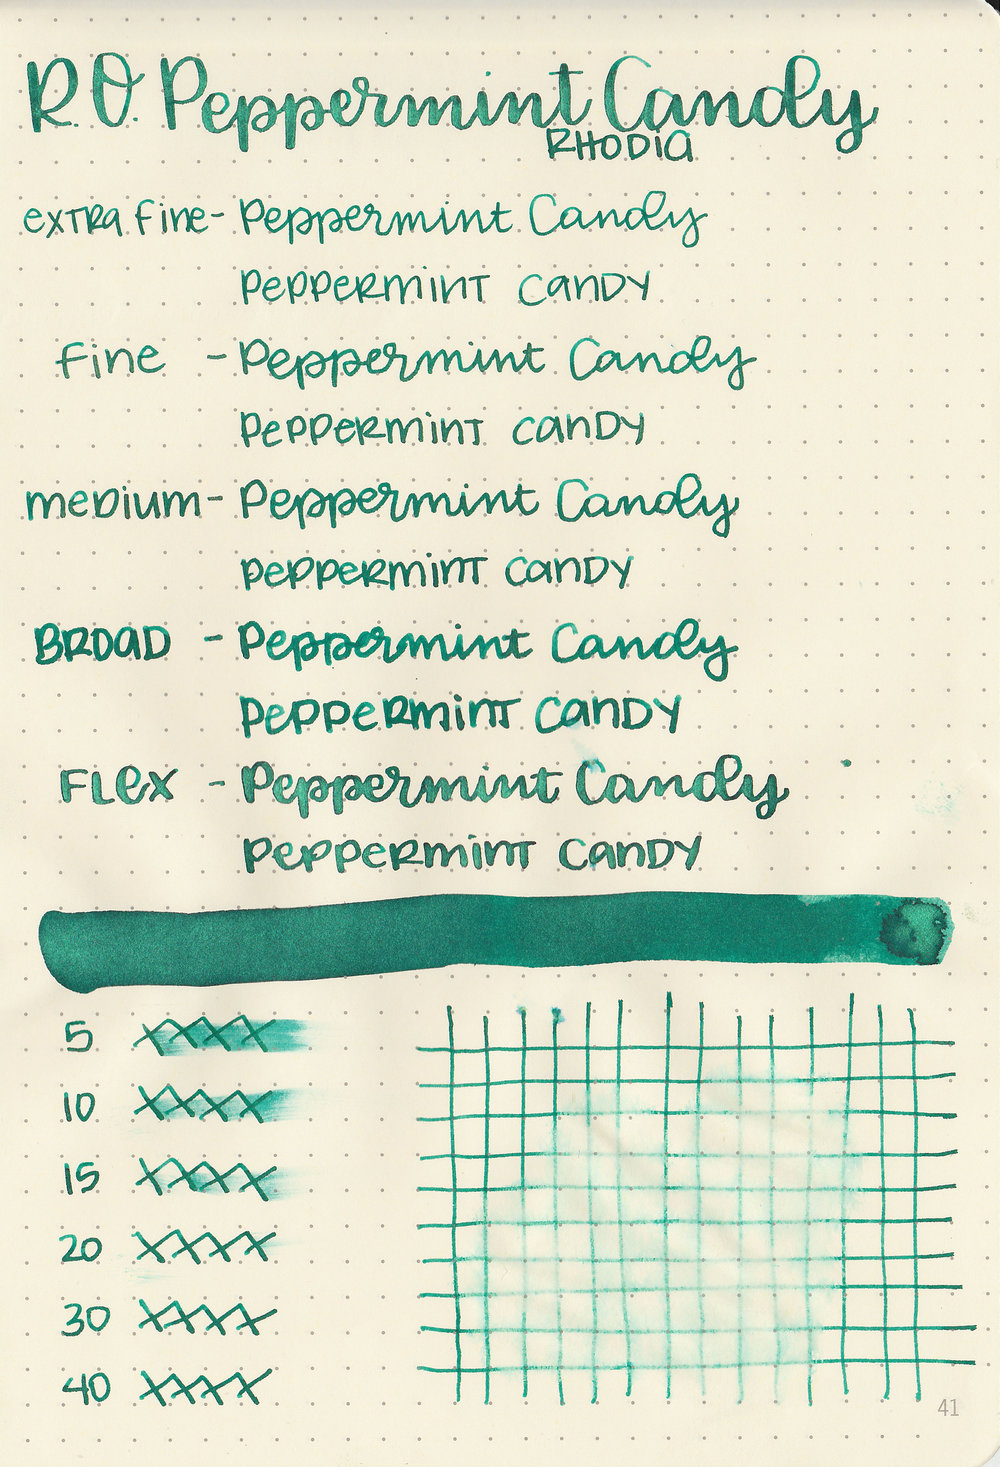 ro-peppermint-candy-5.jpg